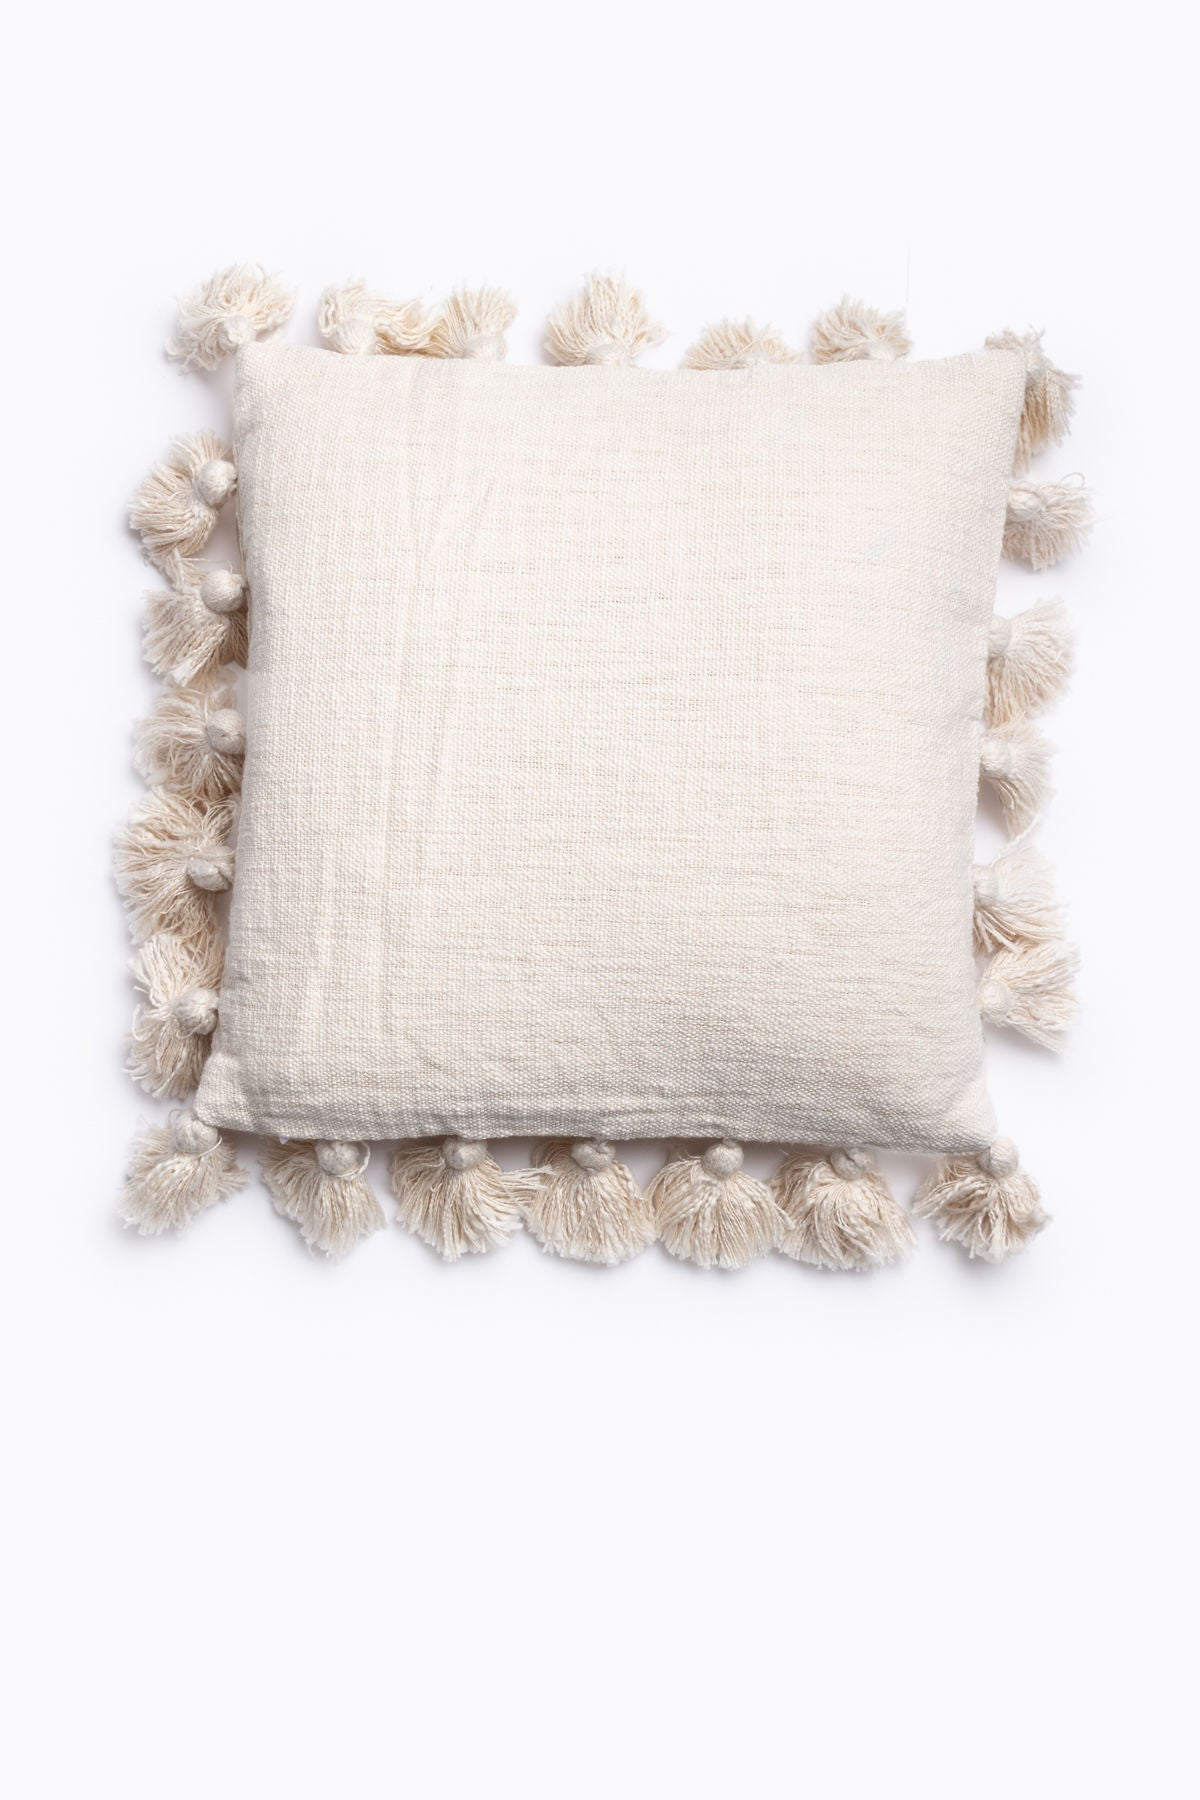 HOME: Square Pillow w/ Tassels in Cream